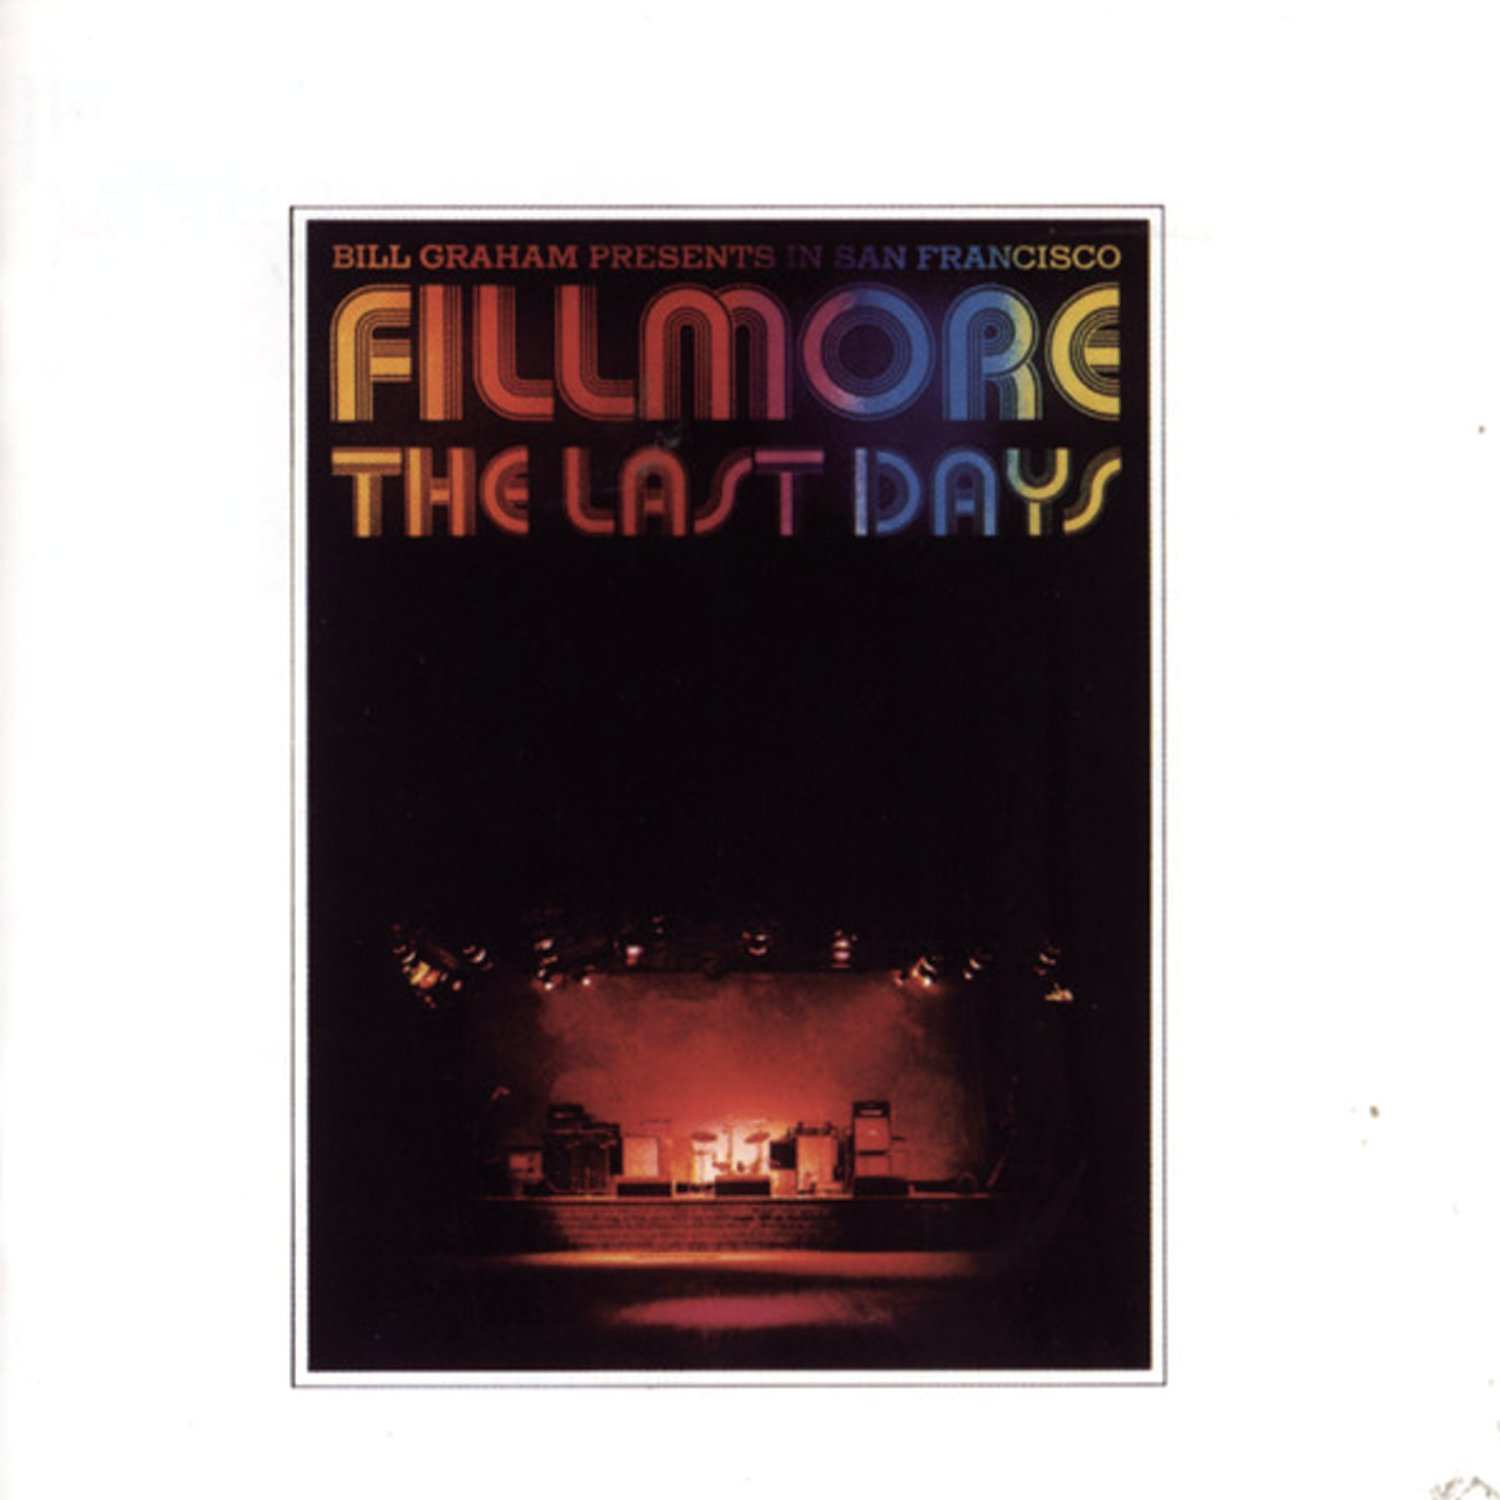 Bill Graham Presents In San Francisco - Fillmore:  The Last Days by Unknown